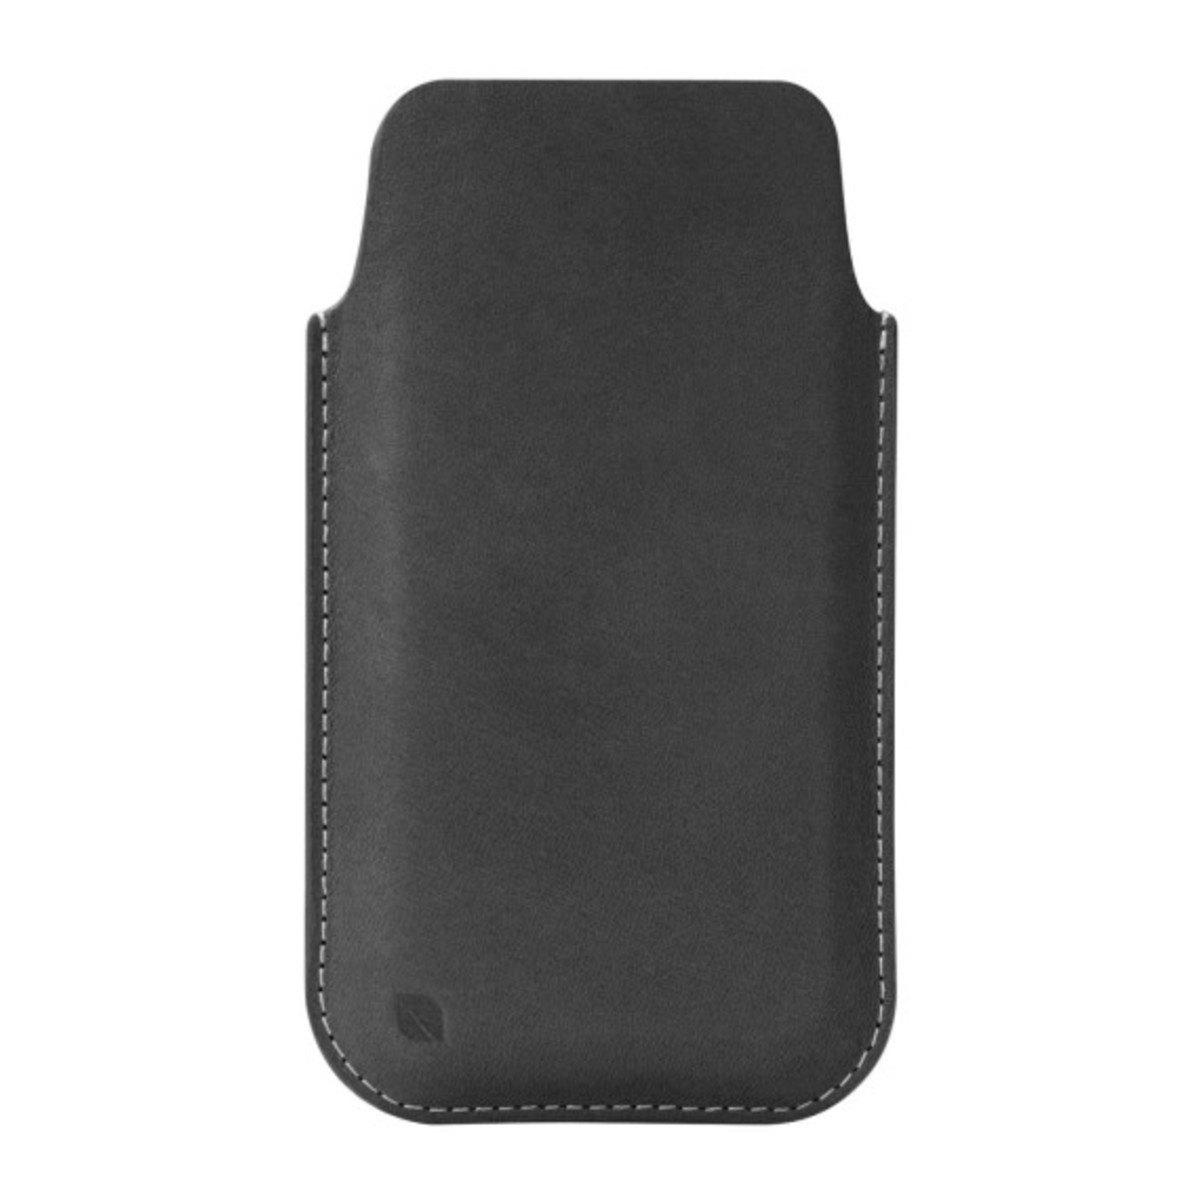 incase-iphone-5-leather-pouch-08